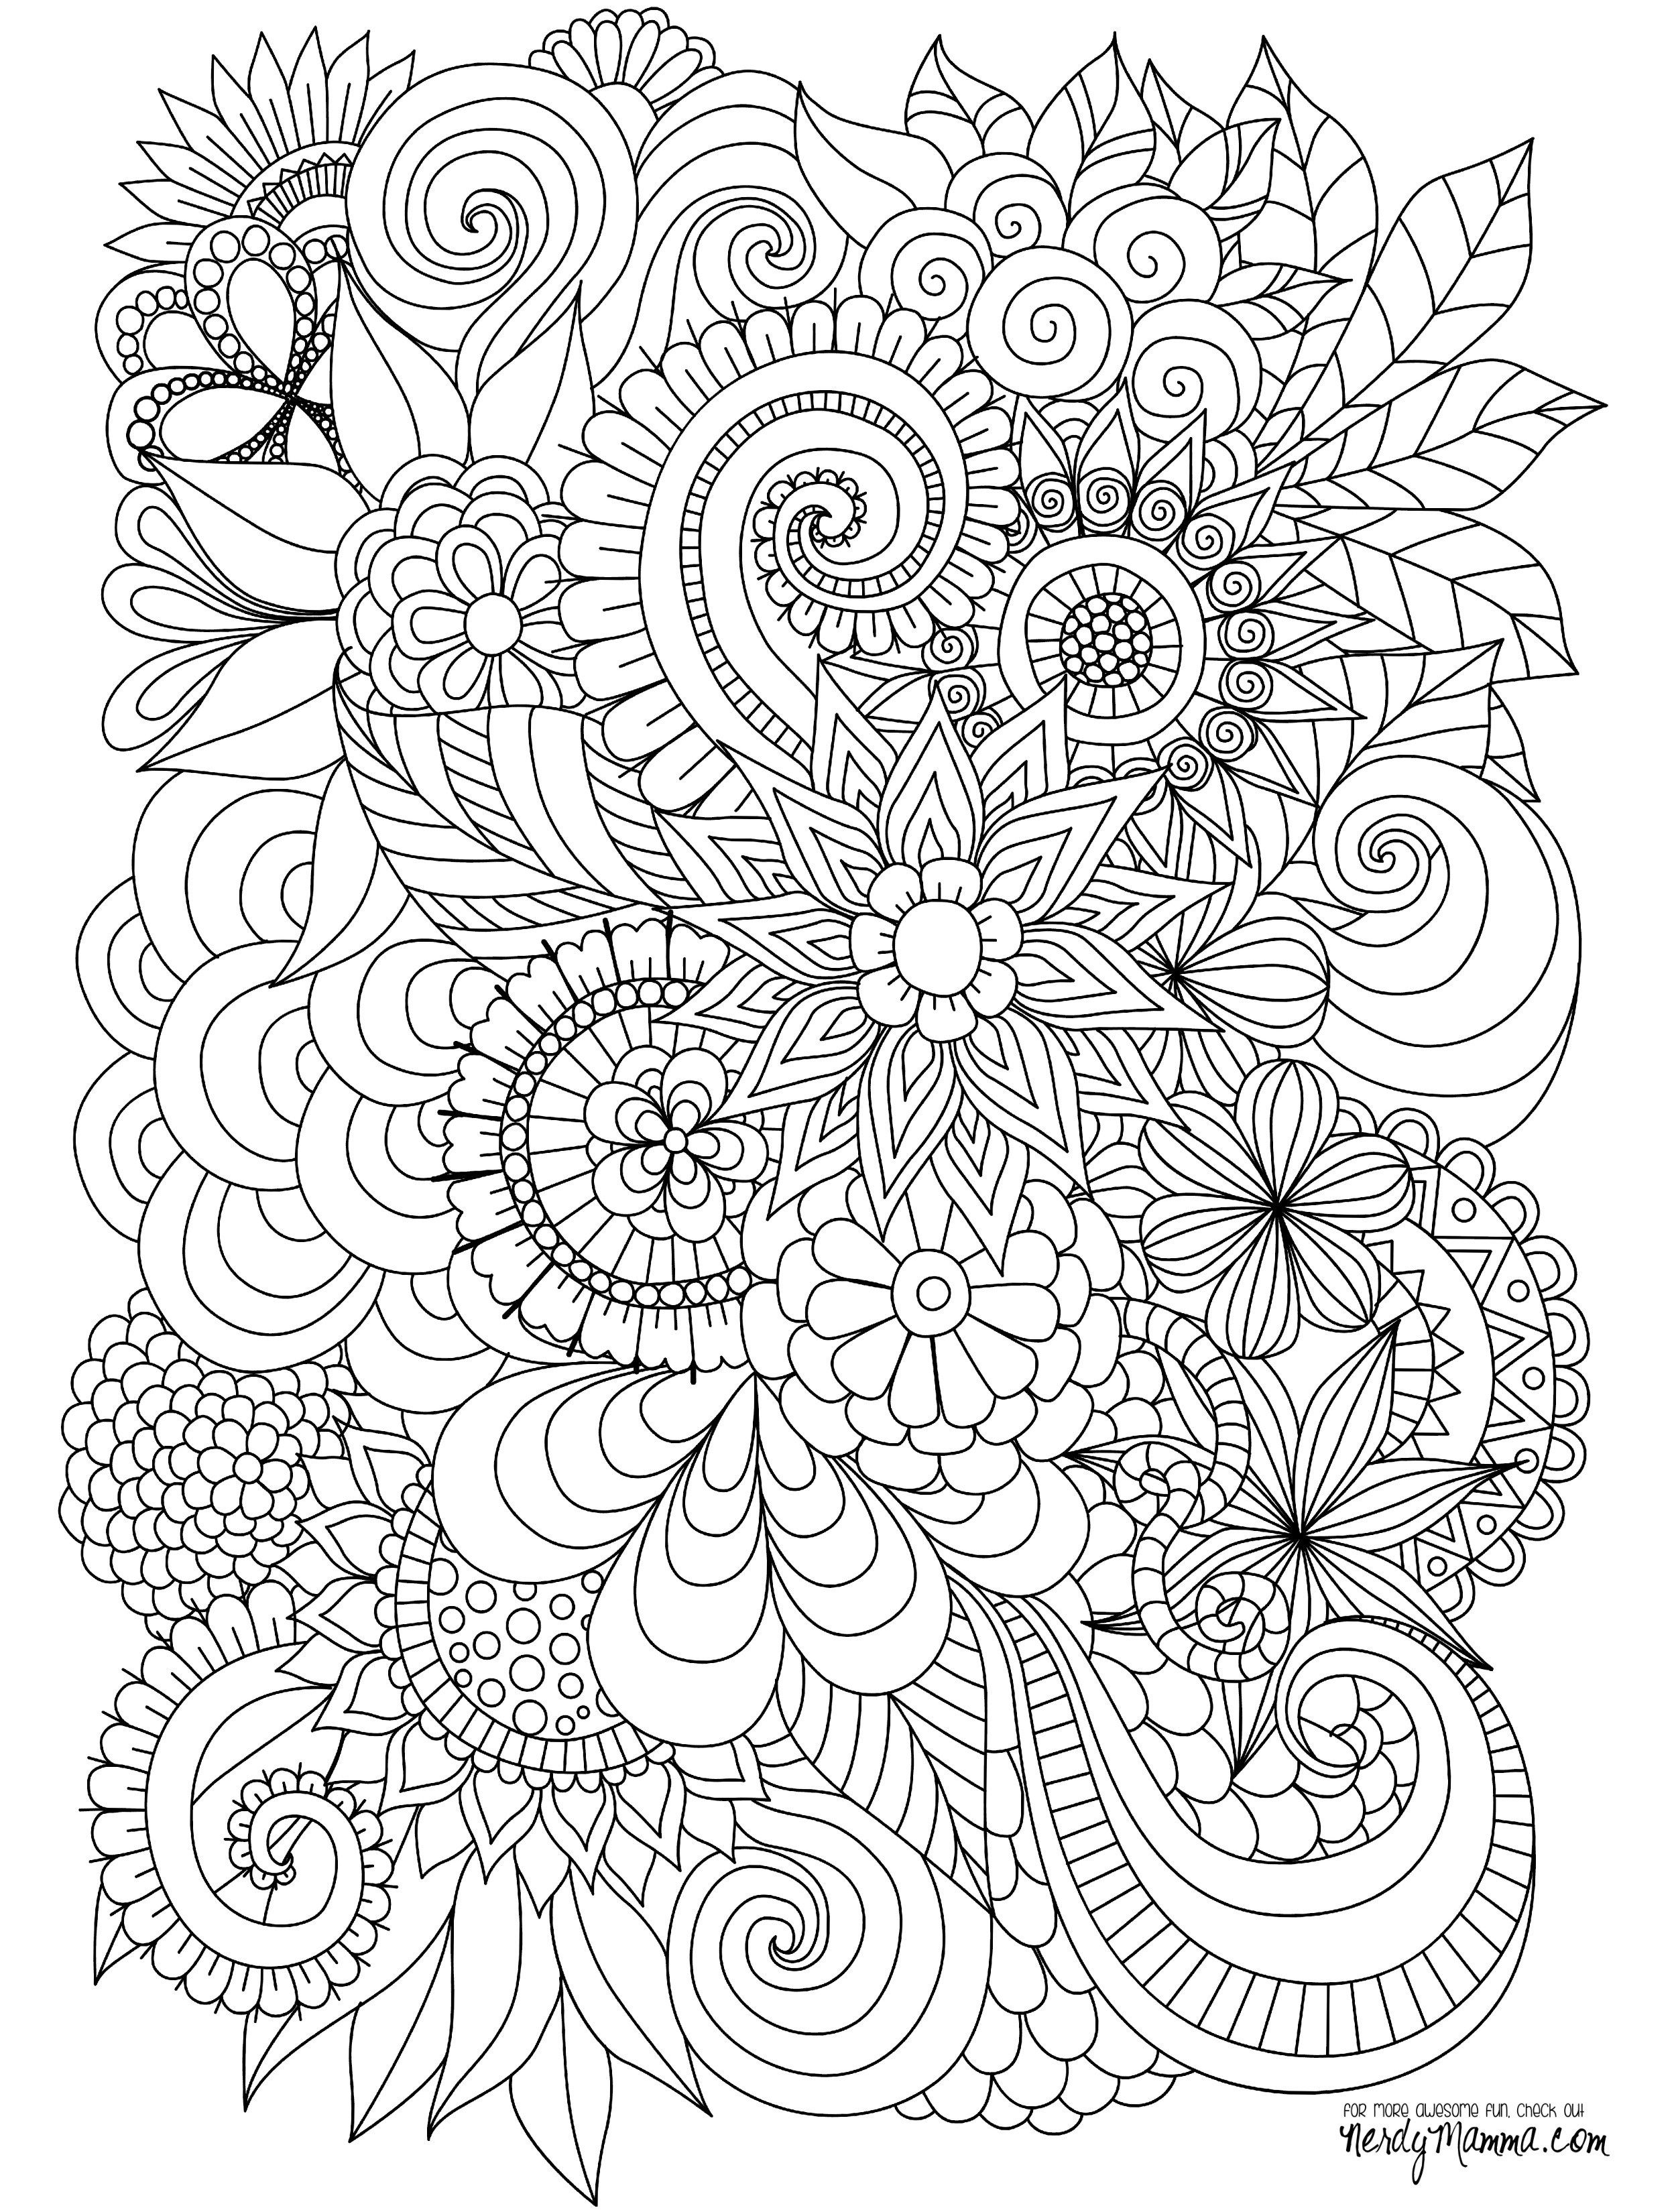 Advanced Coloring Pages Flowers  Collection 19a - Free Download